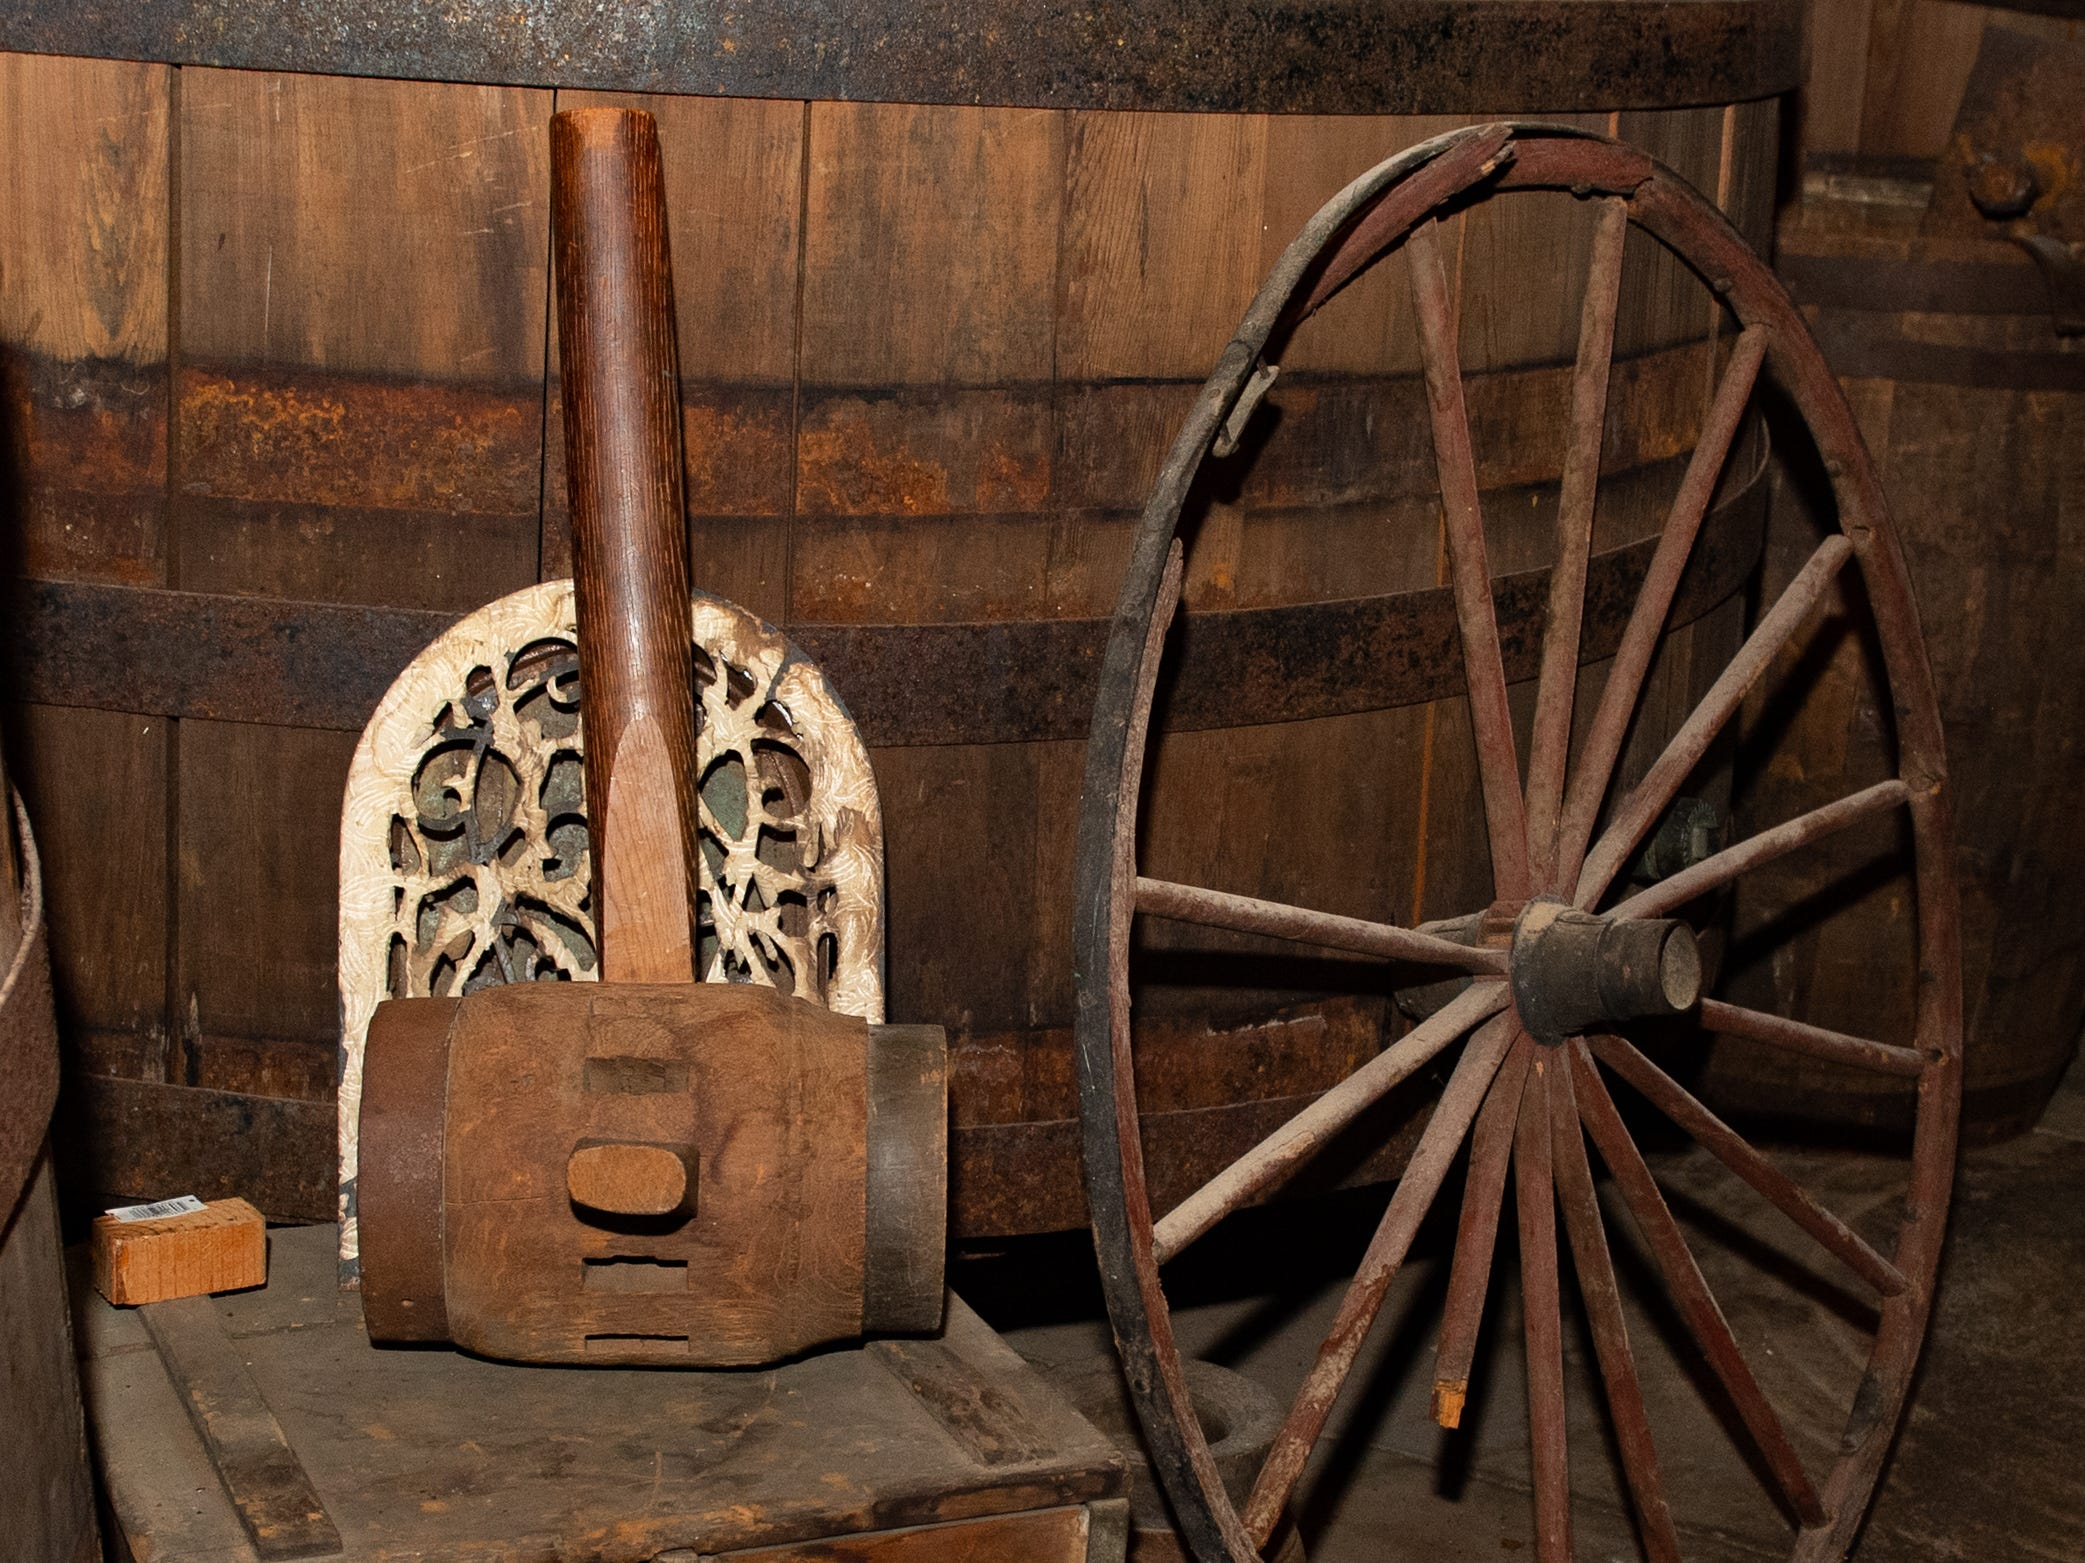 Some old tools and wheels sit along side the barrels at Bube's Brewery, February 22, 2019.